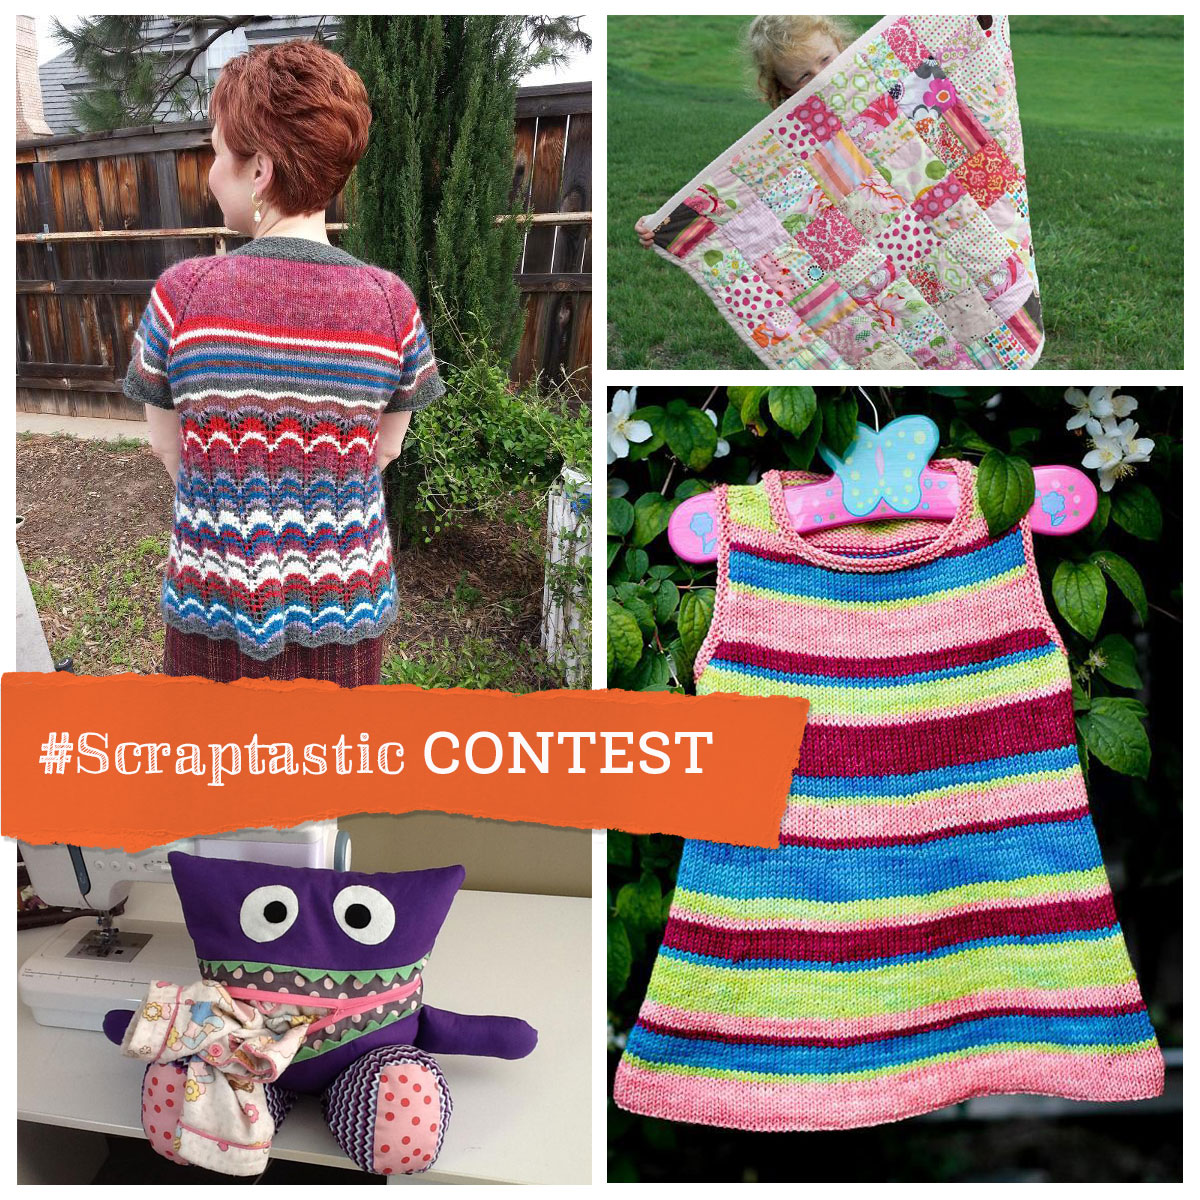 Keep Up With Bluprint's Contests and Giveaways